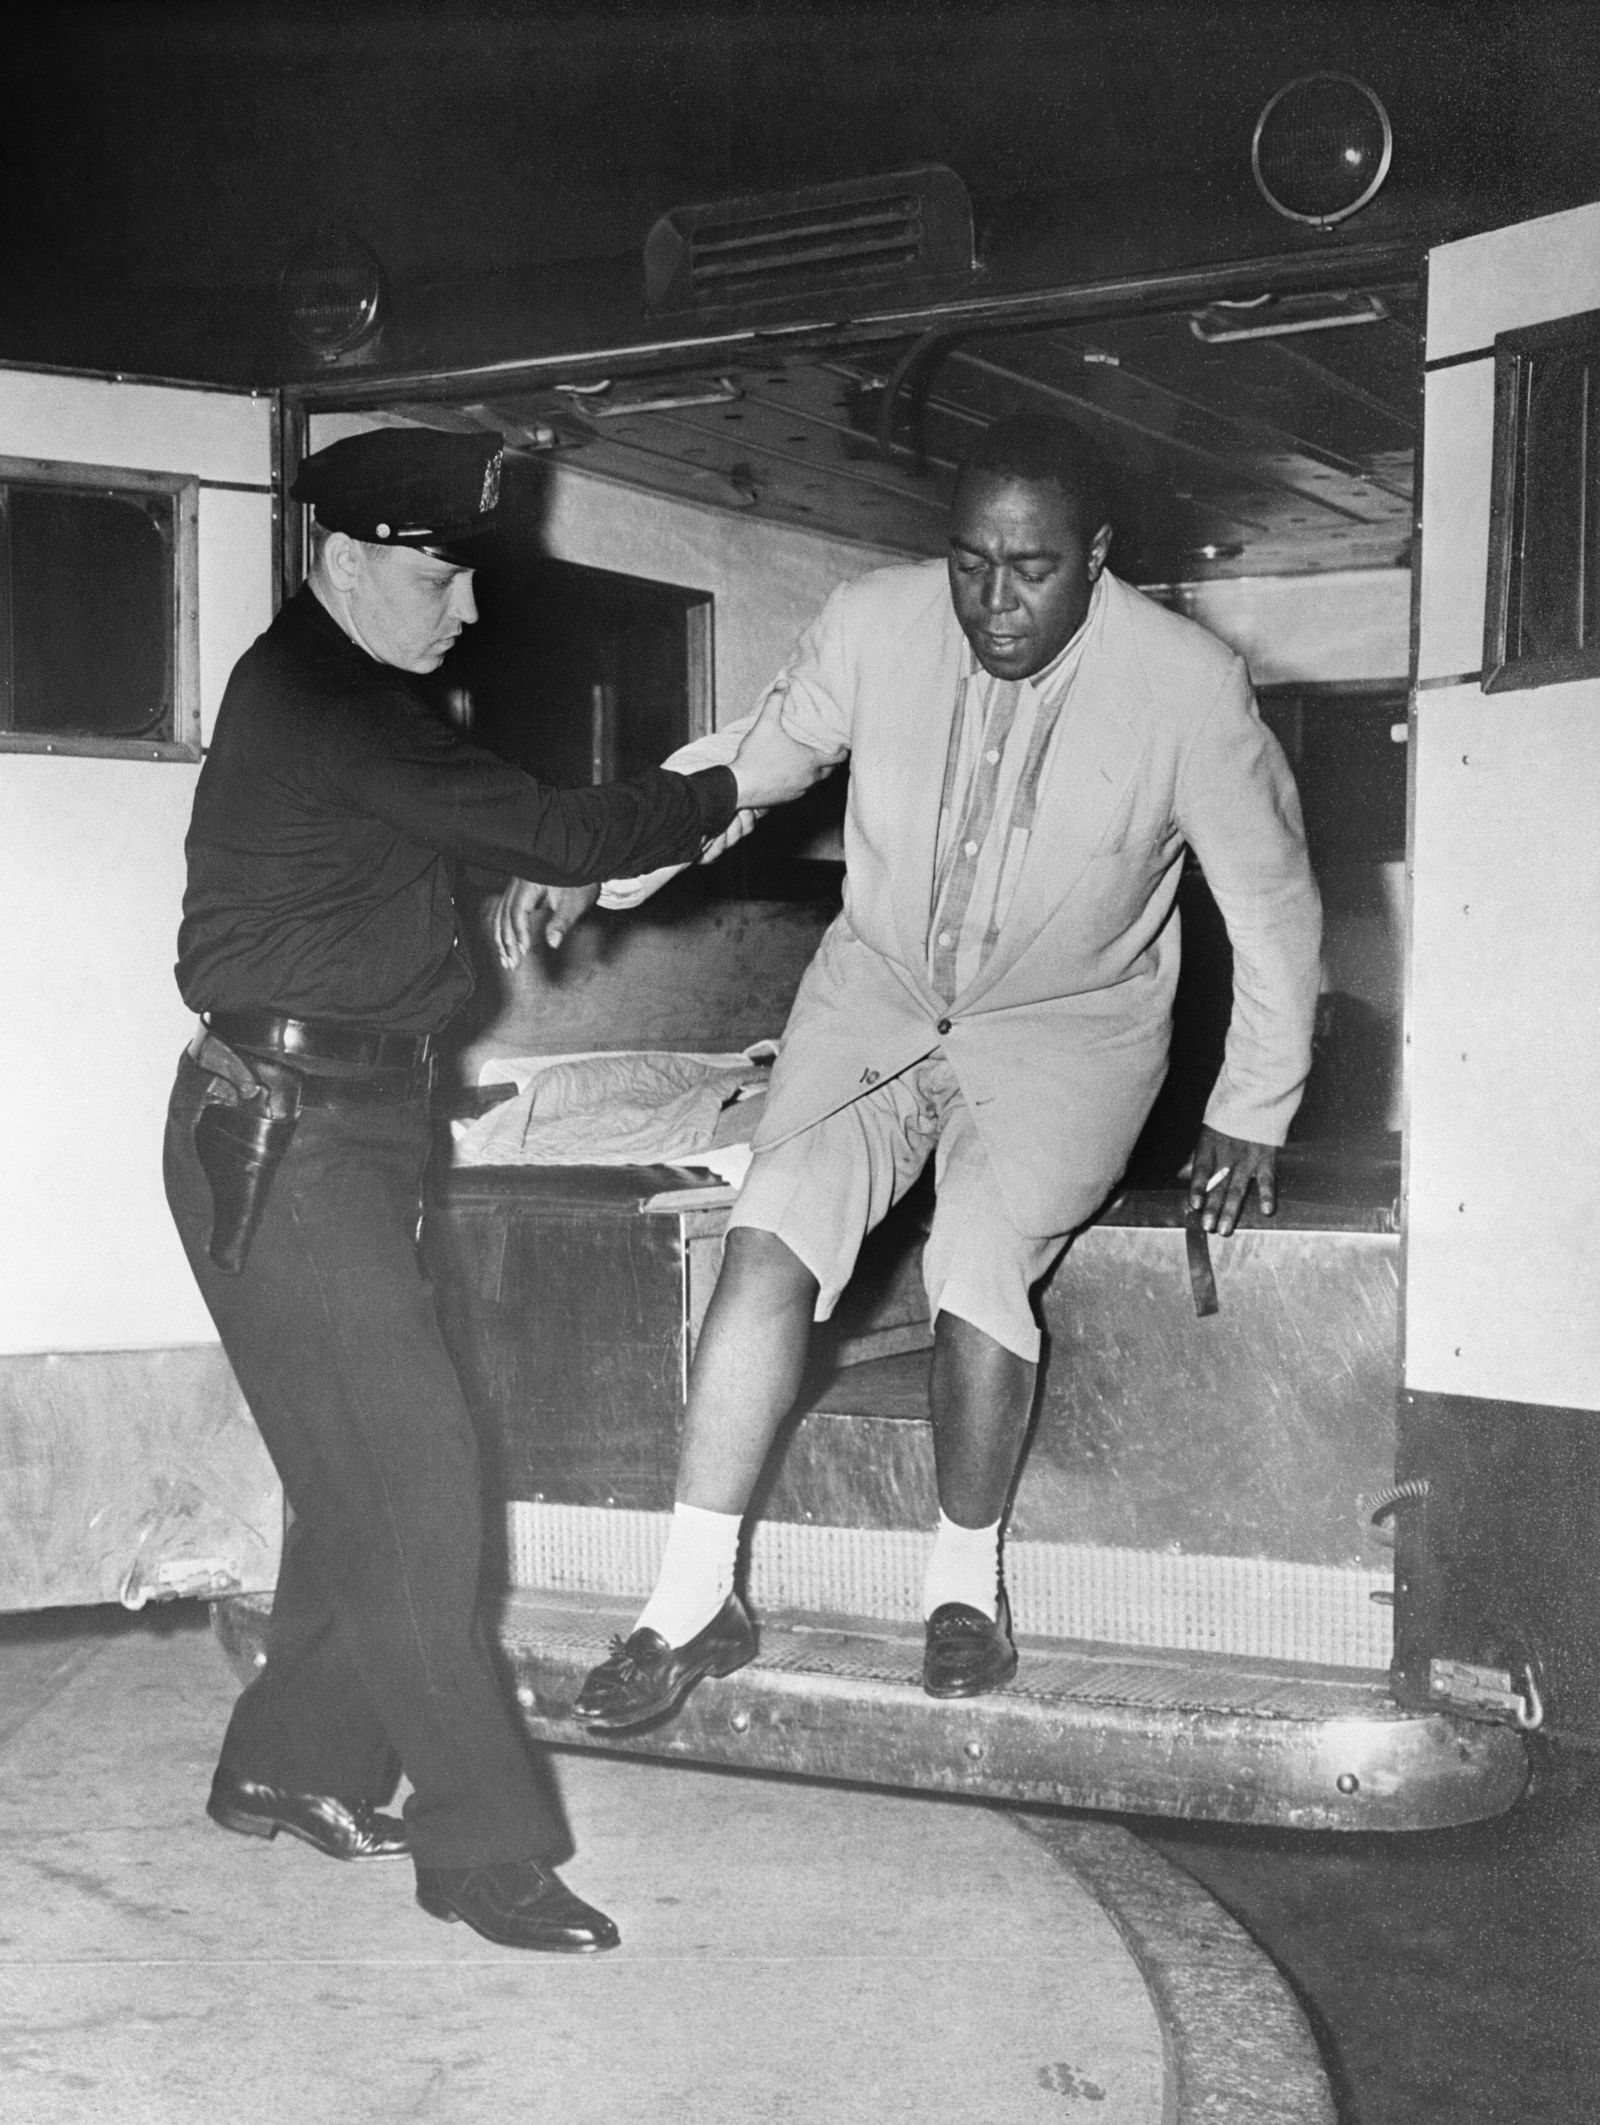 Police Officer Helping Charlie Parker from Ambulance